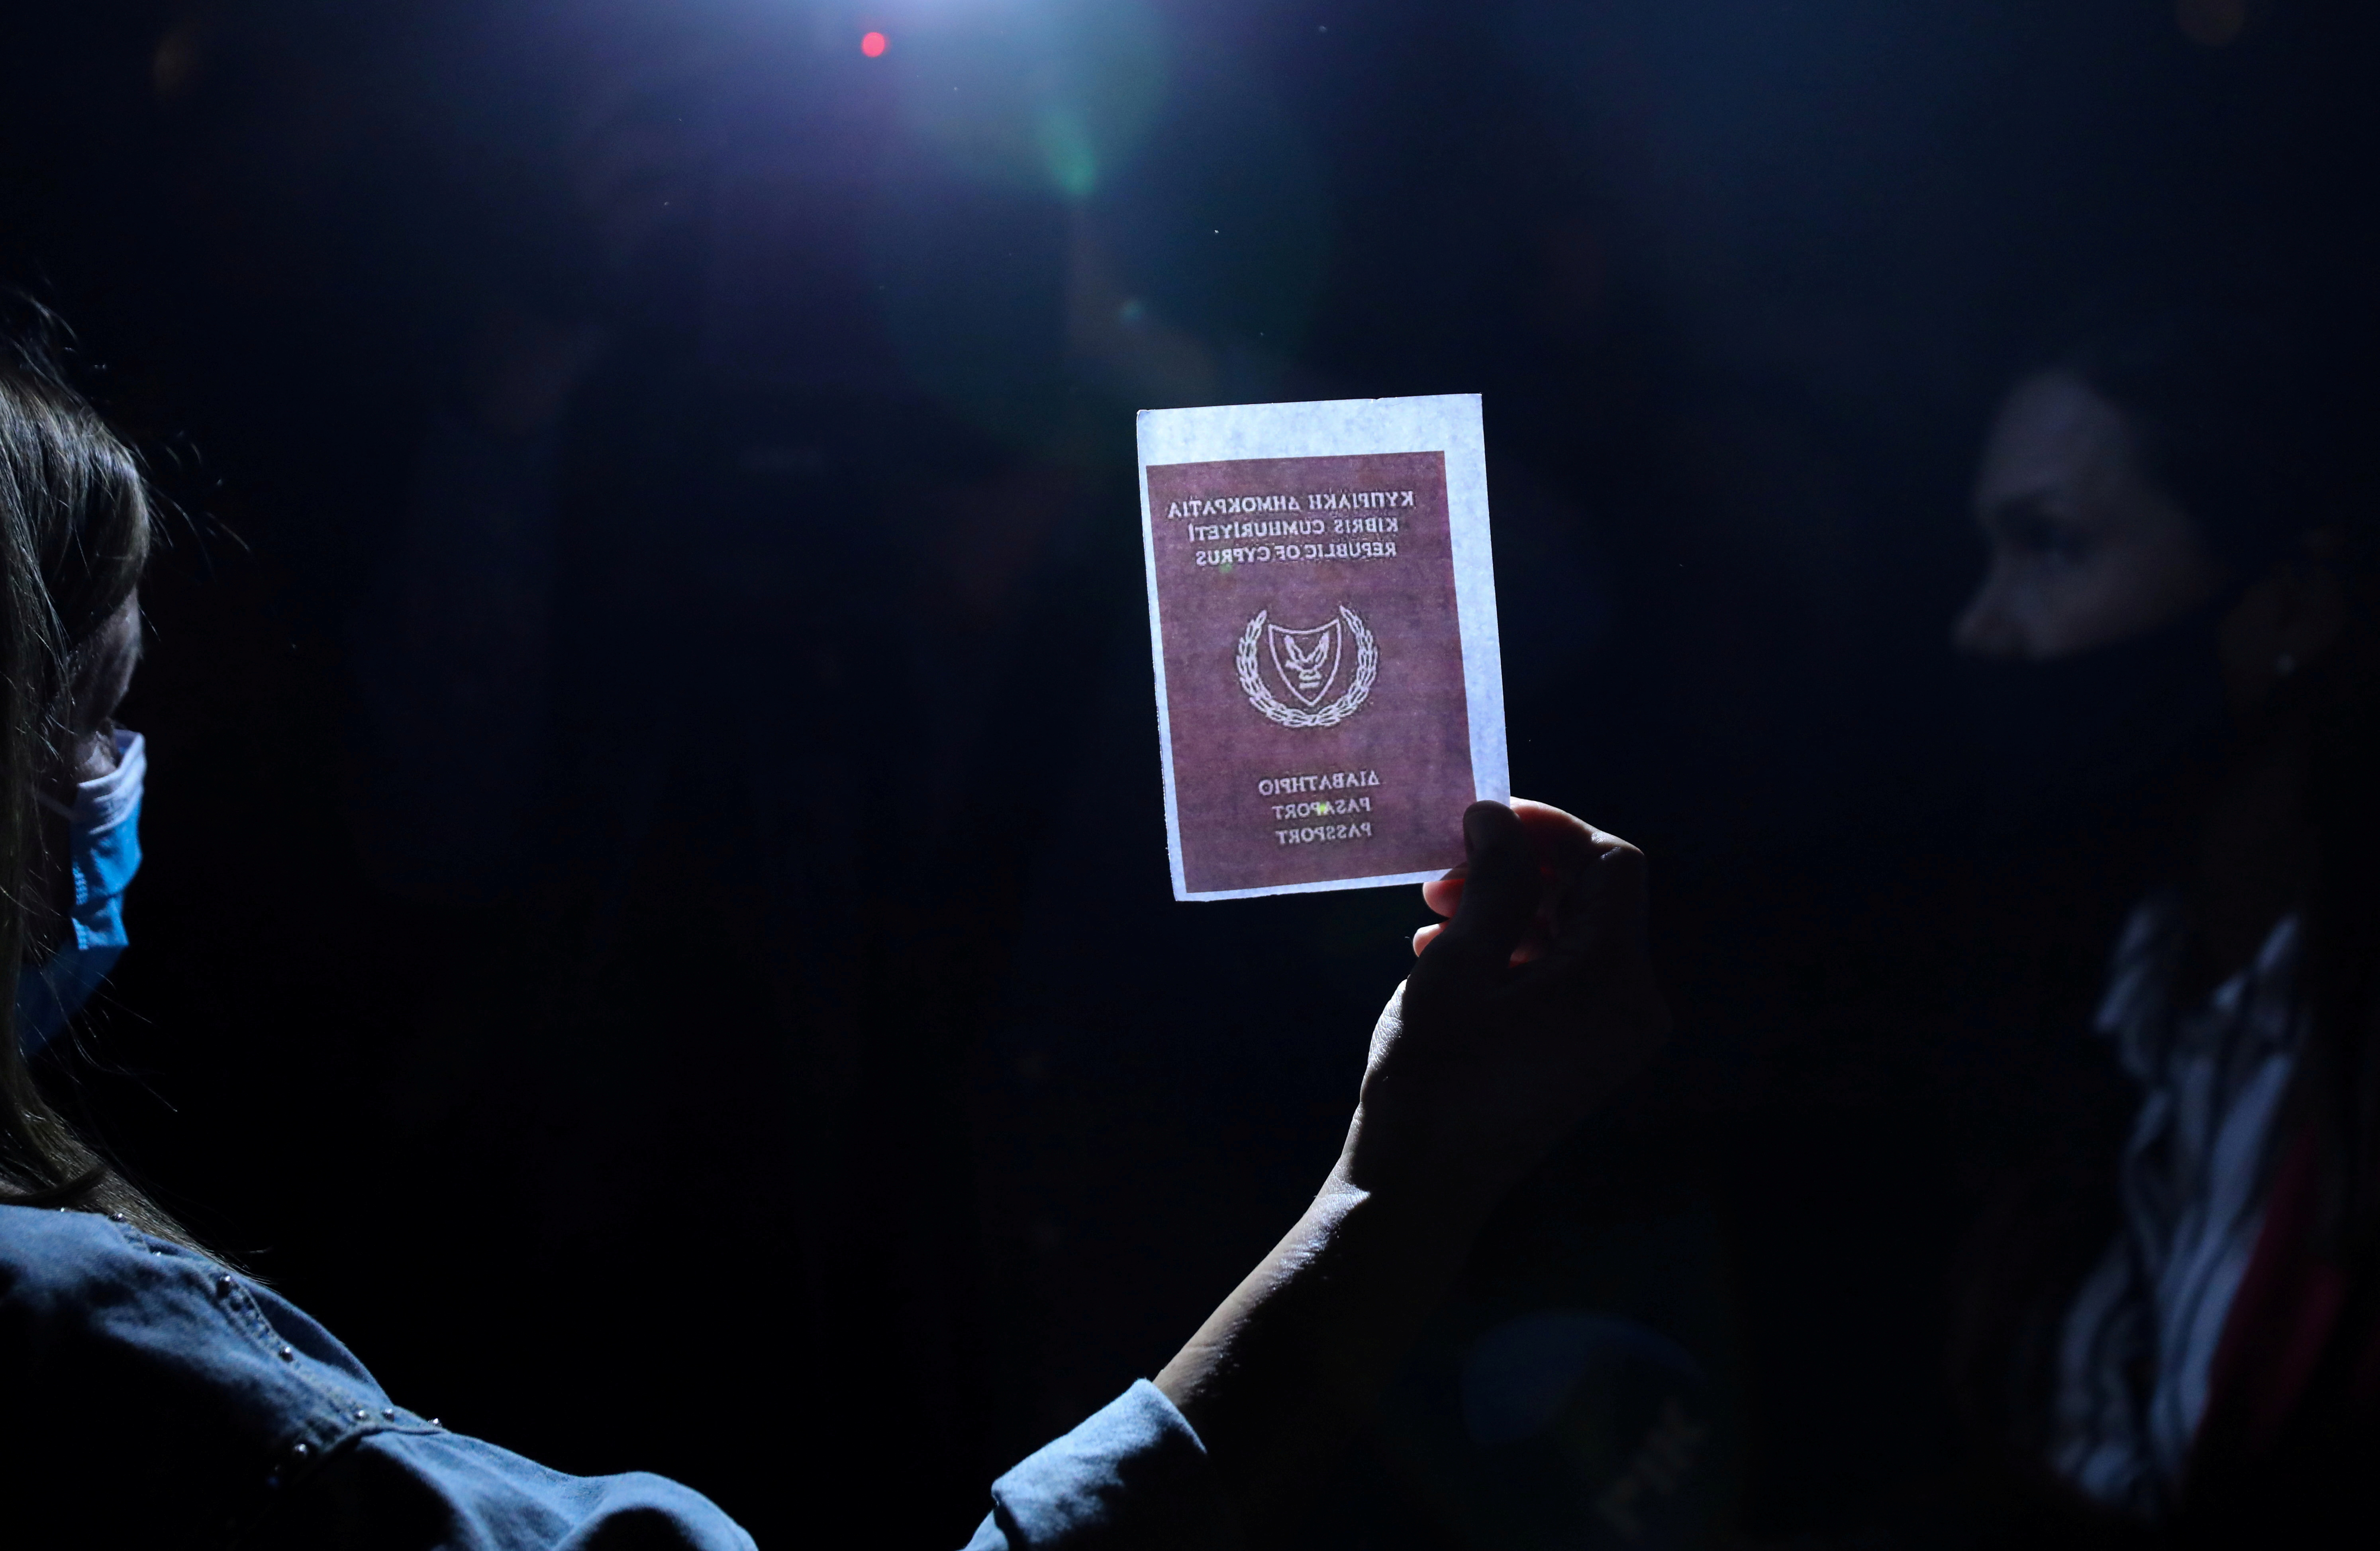 A person holds an image of a passport during a protest against corruption outside the Filoxenia Conference Center, currently hosting Cyprus parliament, in Nicosia, Cyprus October 14, 2020. REUTERS/Yiannis Kourtoglou